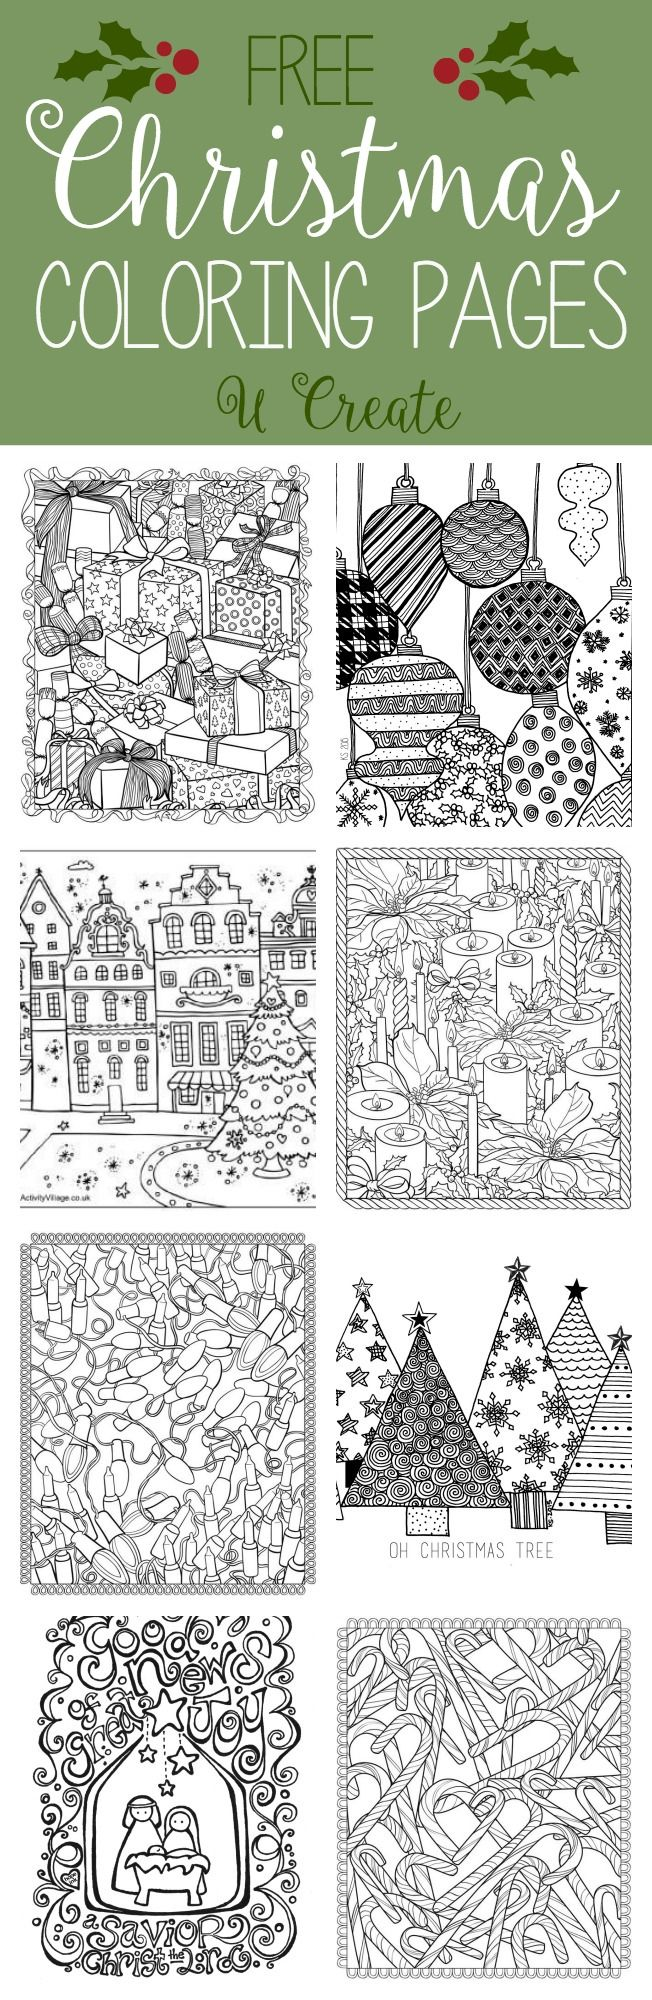 Free Christmas Adult Coloring Pages (U Create) Adult